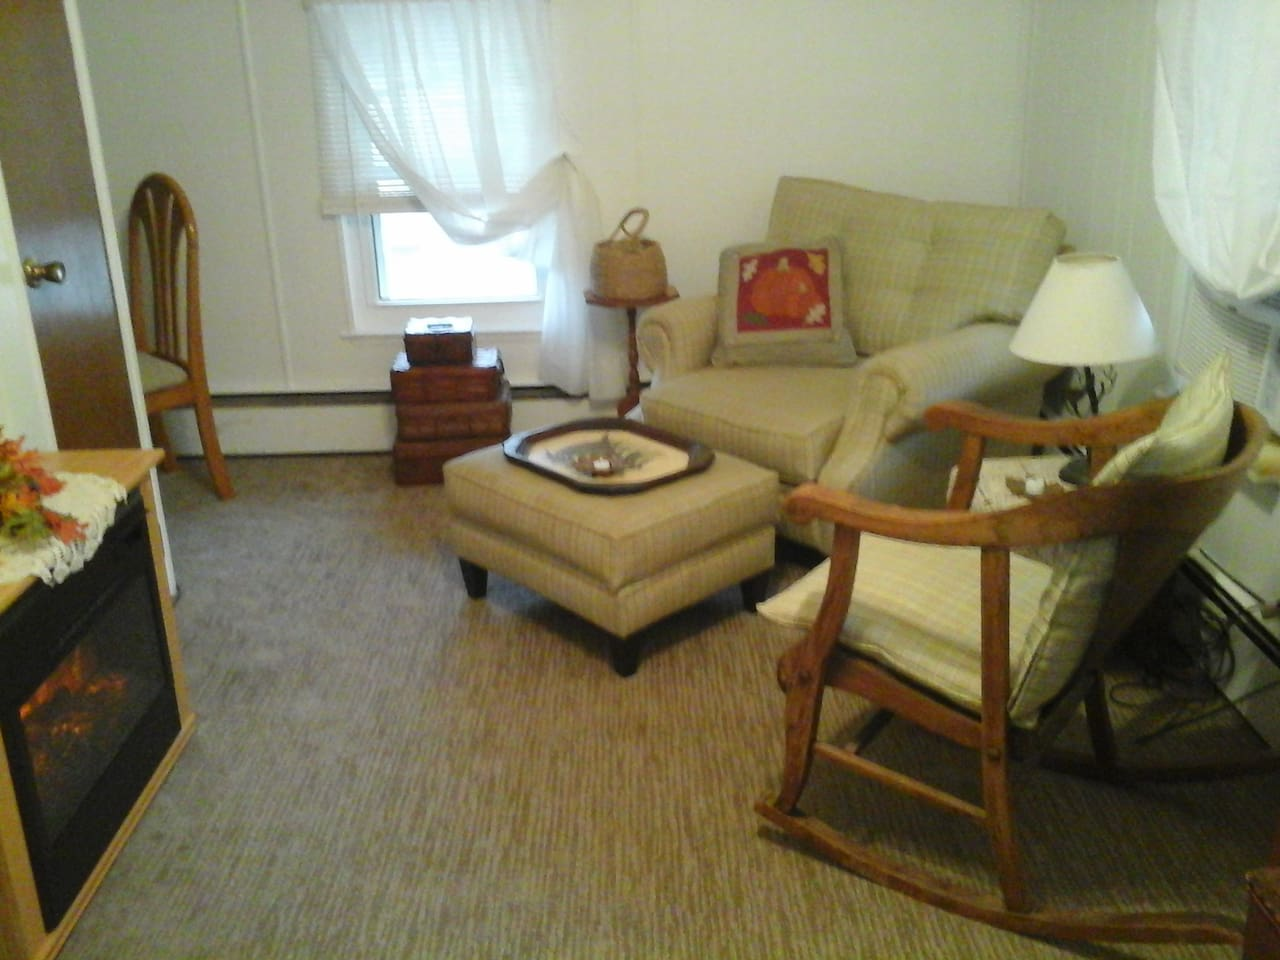 Living room area has electric fireplace to keep things cozy. Also a desk area if needed.